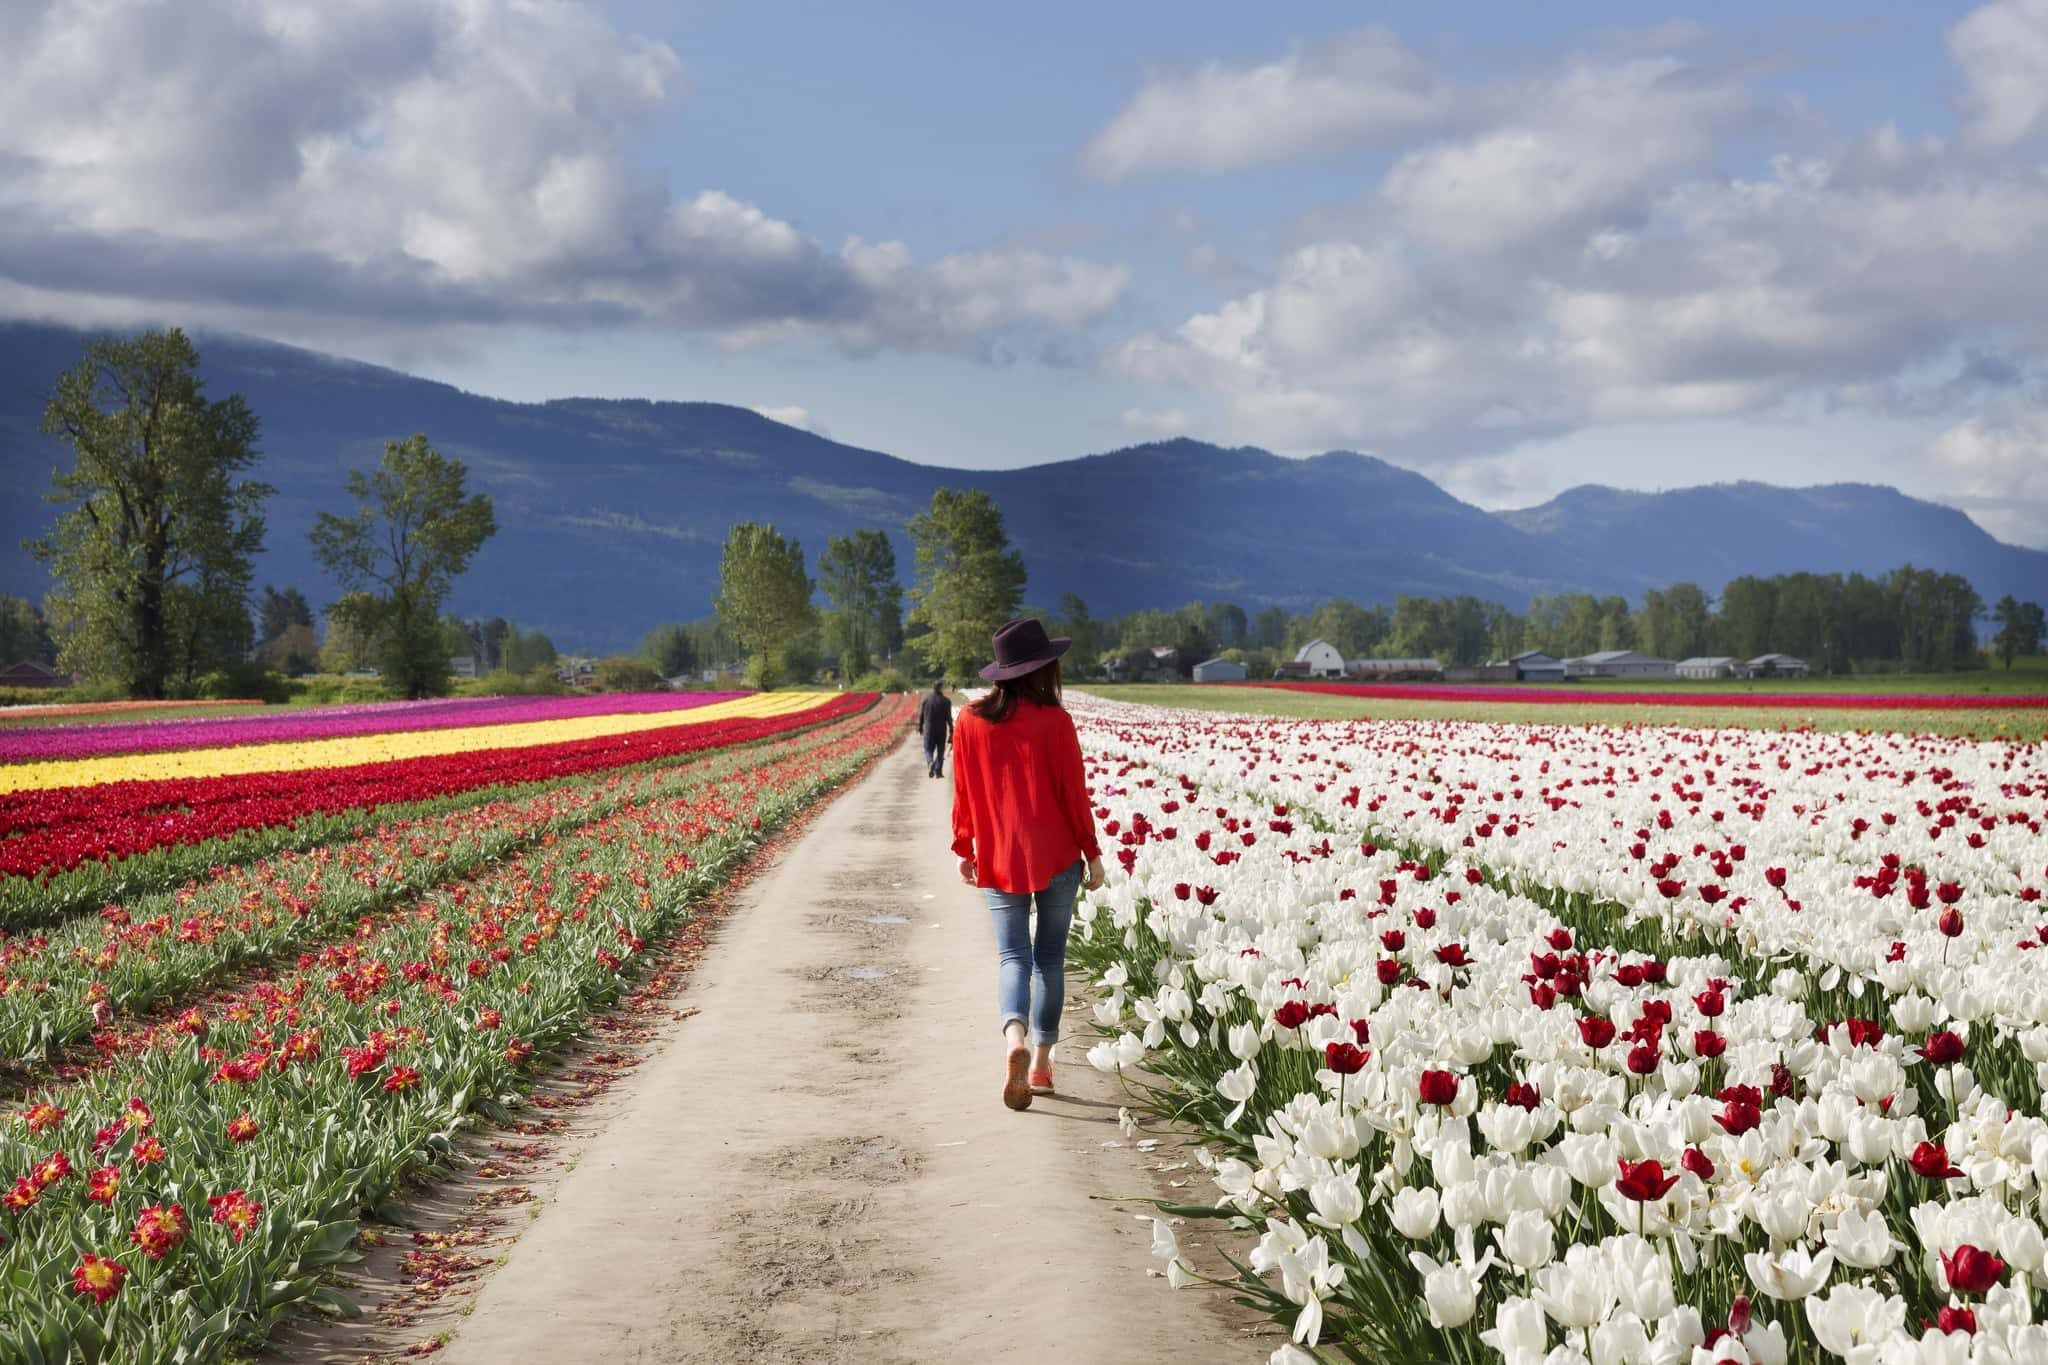 Locals Can Visit The Chilliwack Tulip Festival For Just $4 This Month